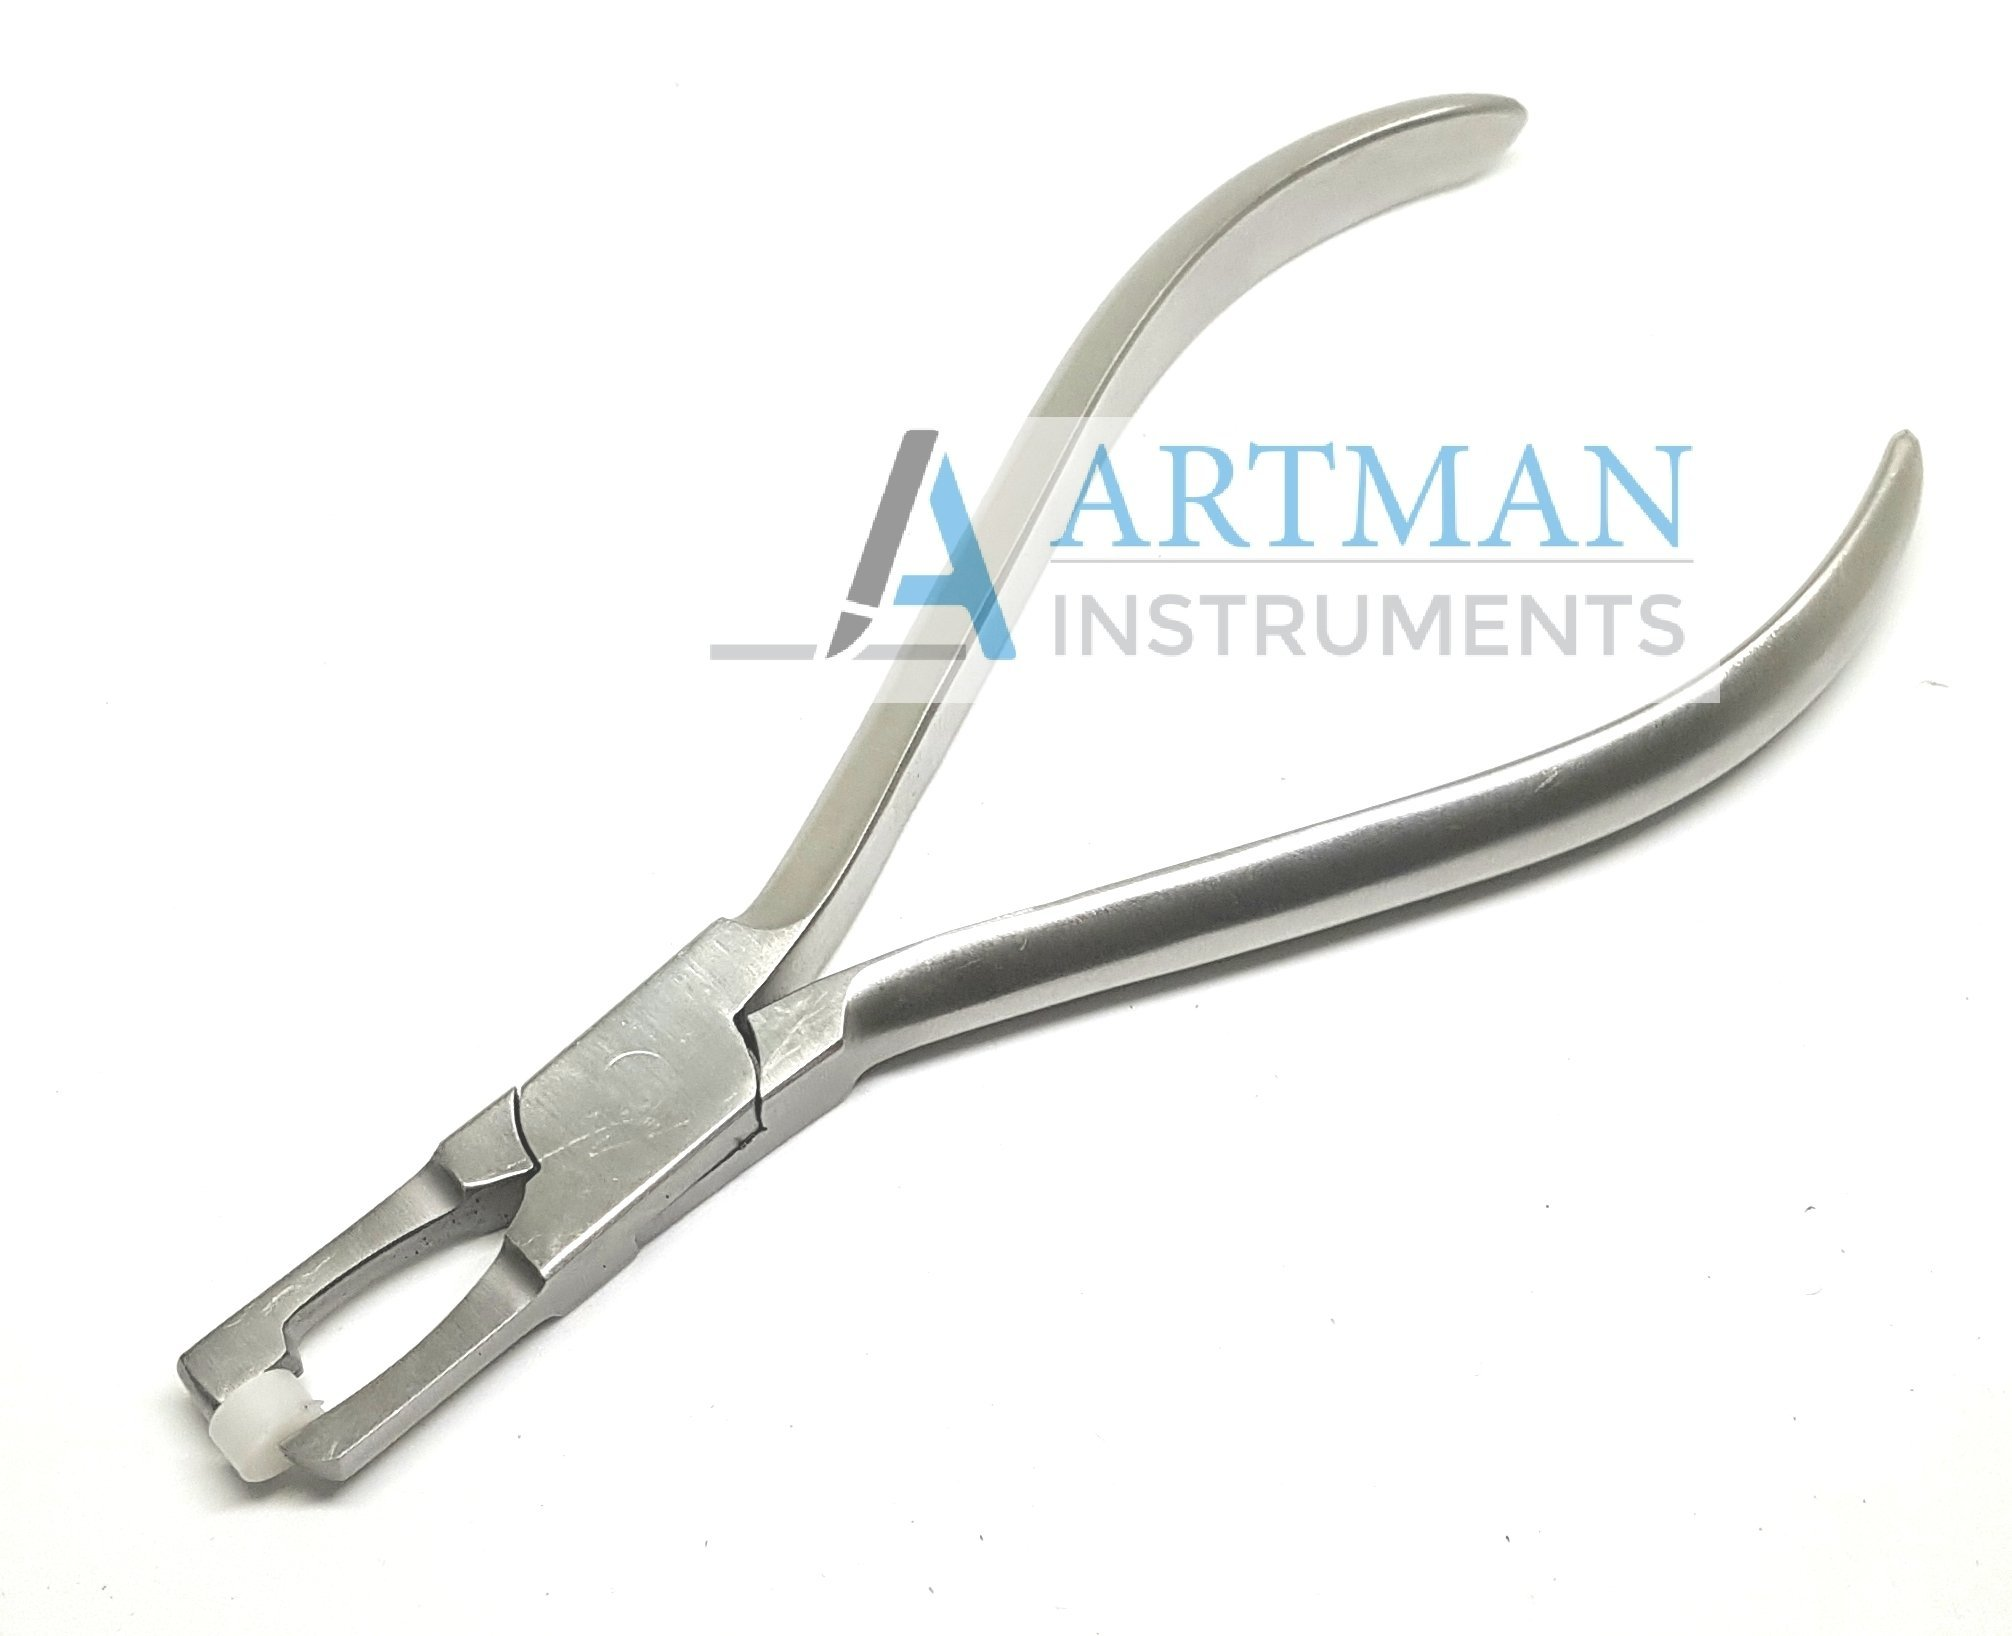 Molar Band Remover pliers band removing pliers Orthodontic Dental ARTMAN brand by Wise Linkers